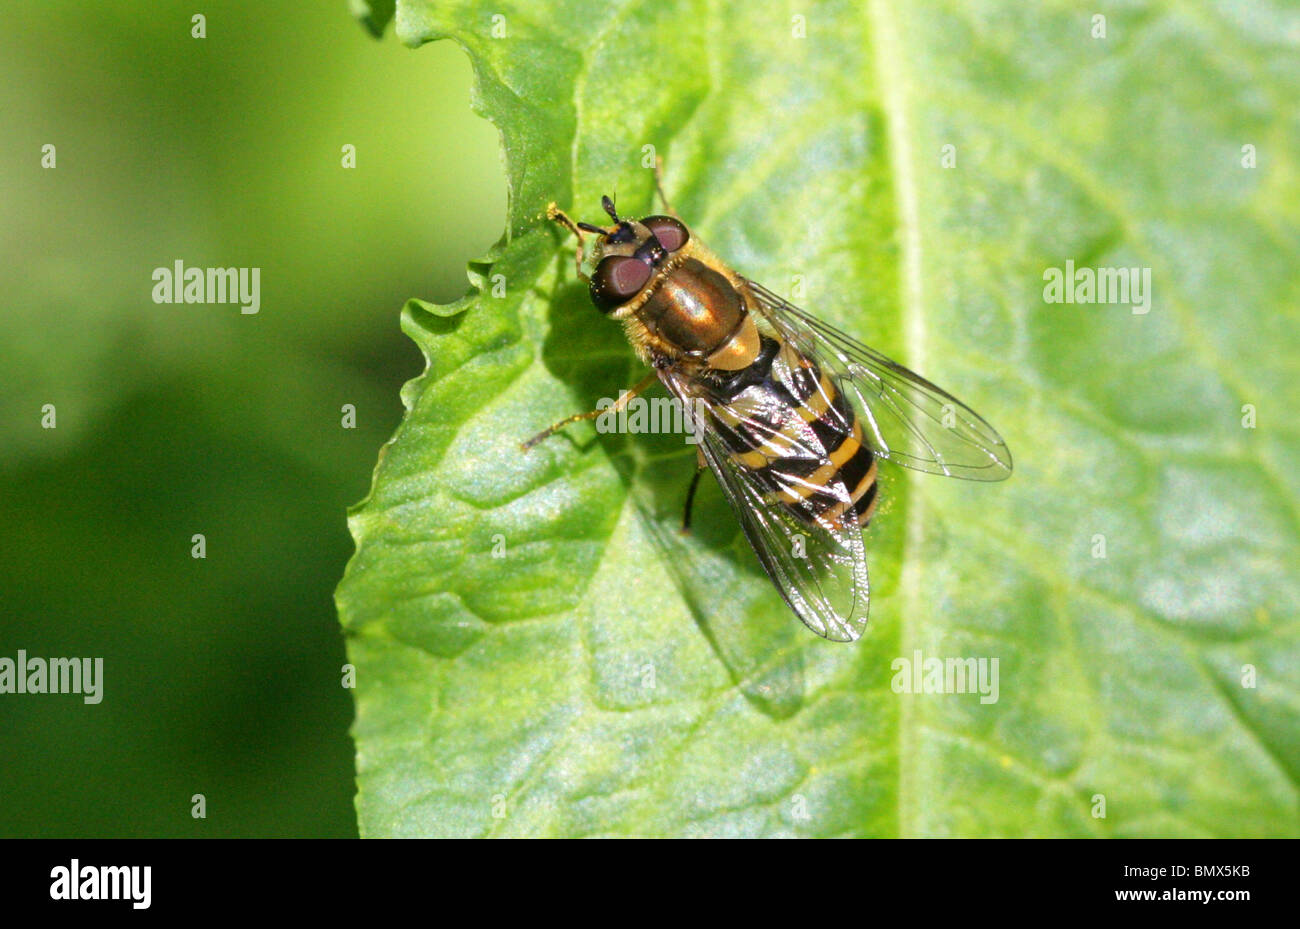 Currant Hover-fly, Syrphus ribesii, Syrphidae, Diptera. Female - Stock Image